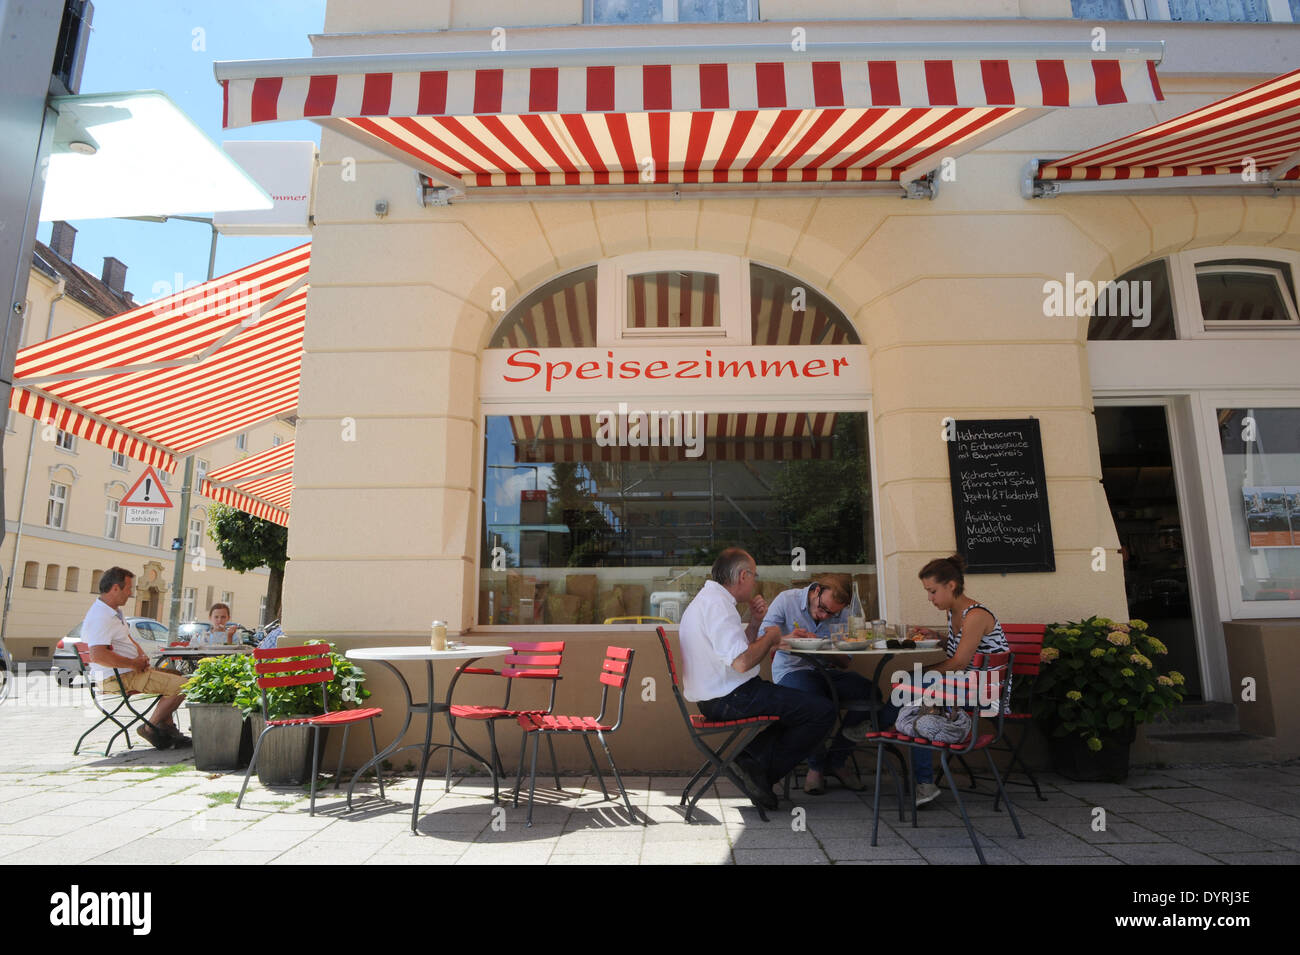 Cafe Speisezimmer In Munich Laim 2011 Stock Photo 68745922 Alamy